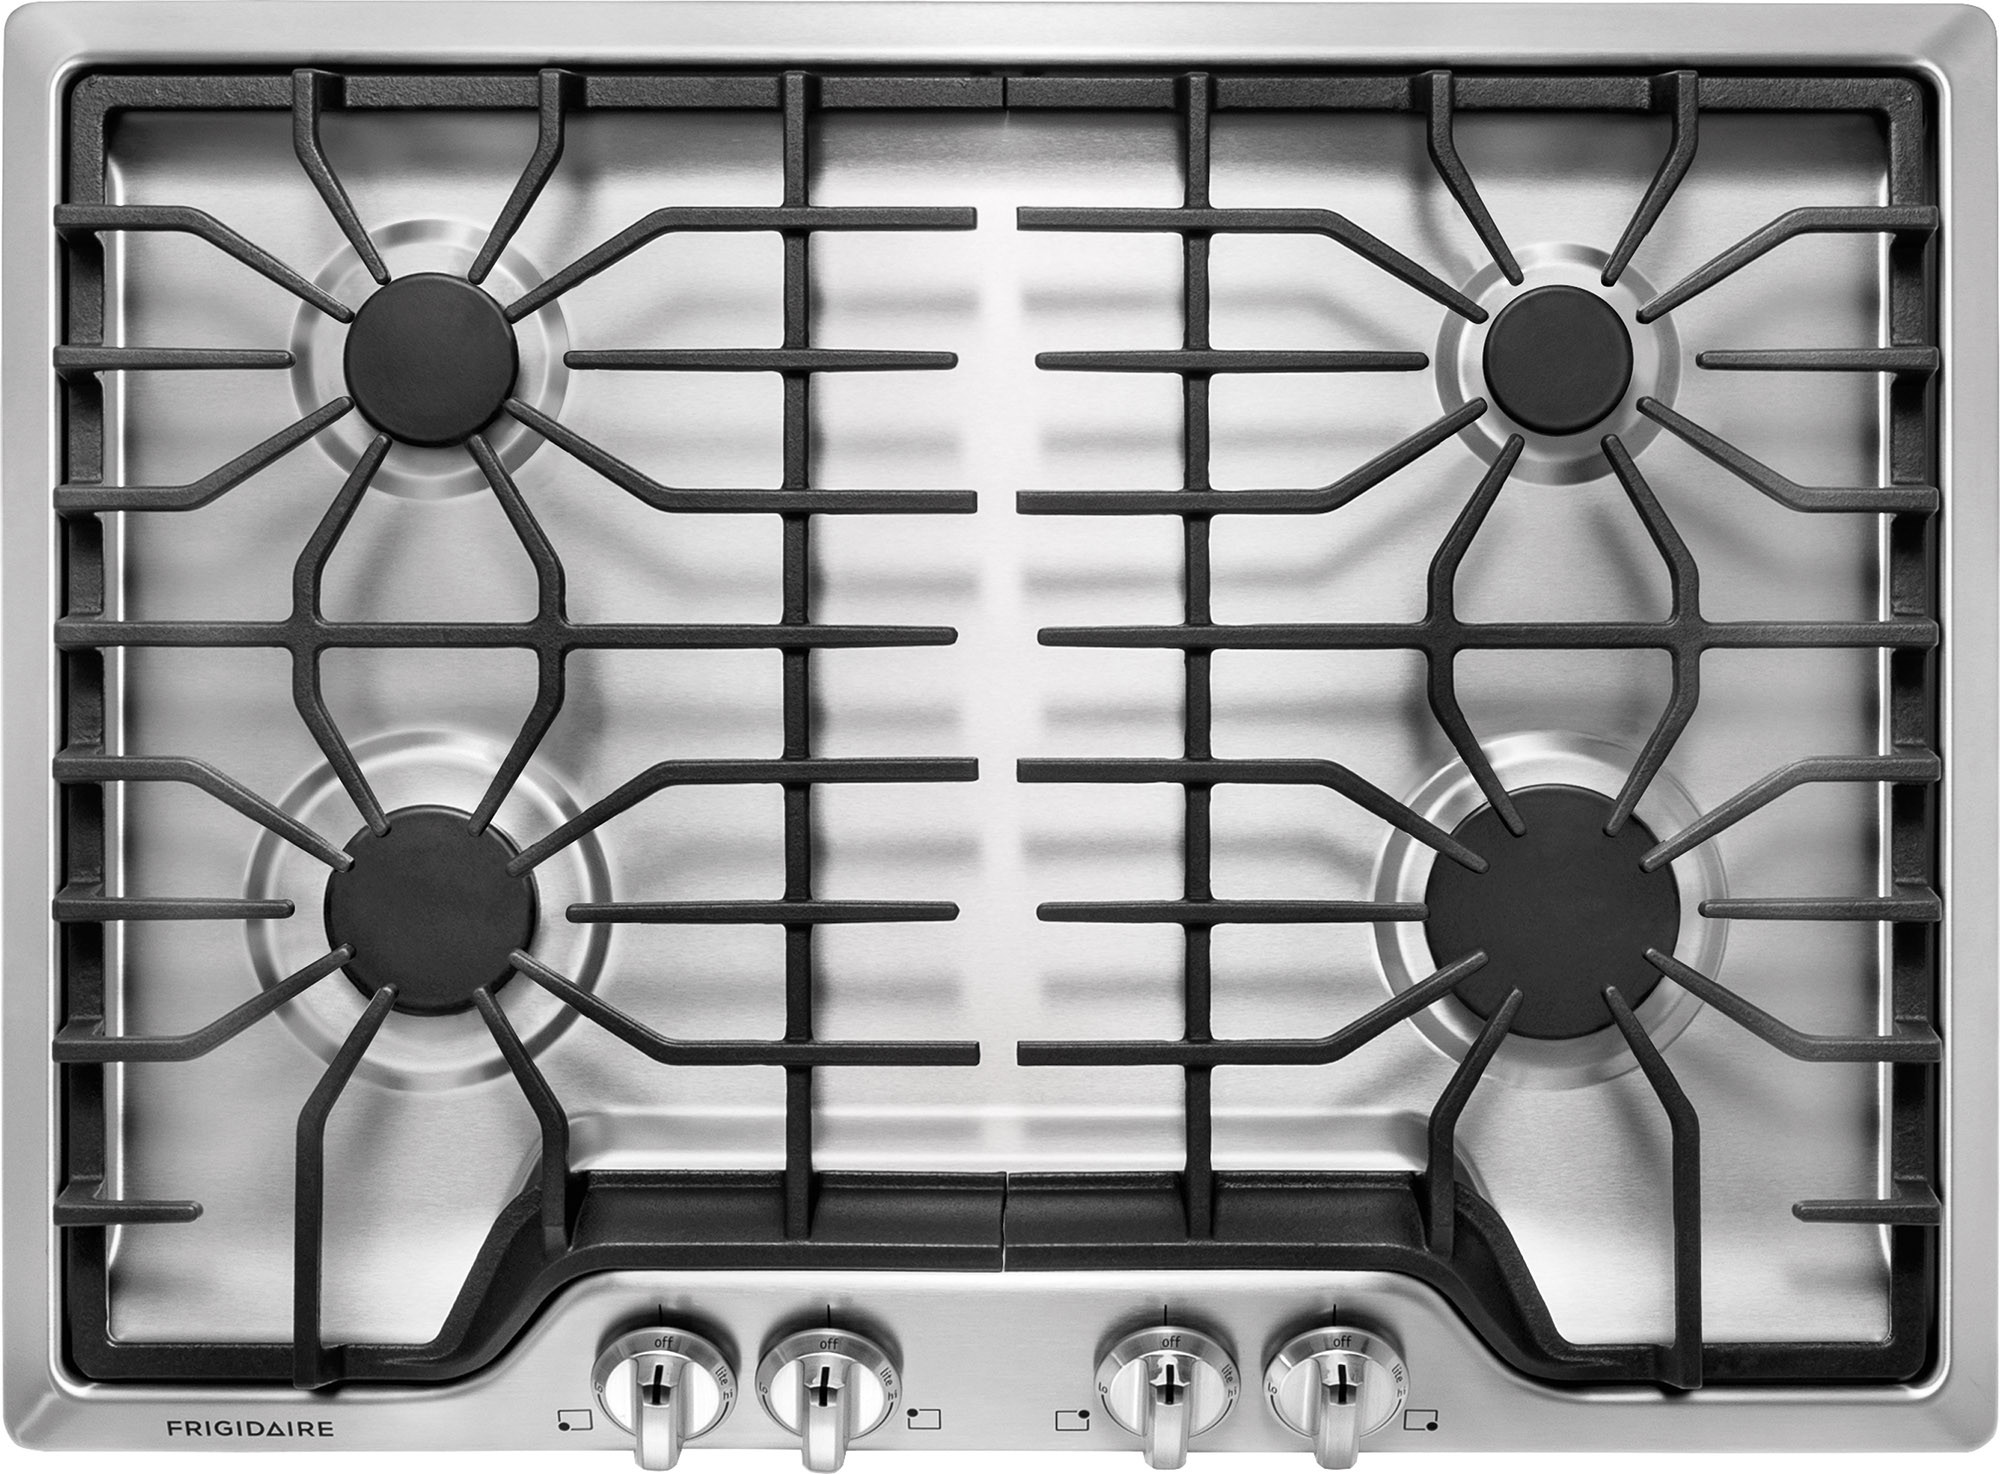 Frigidaire Ffgc3026ss 30 Inch Gas Cooktop With 4 Sealed Burners